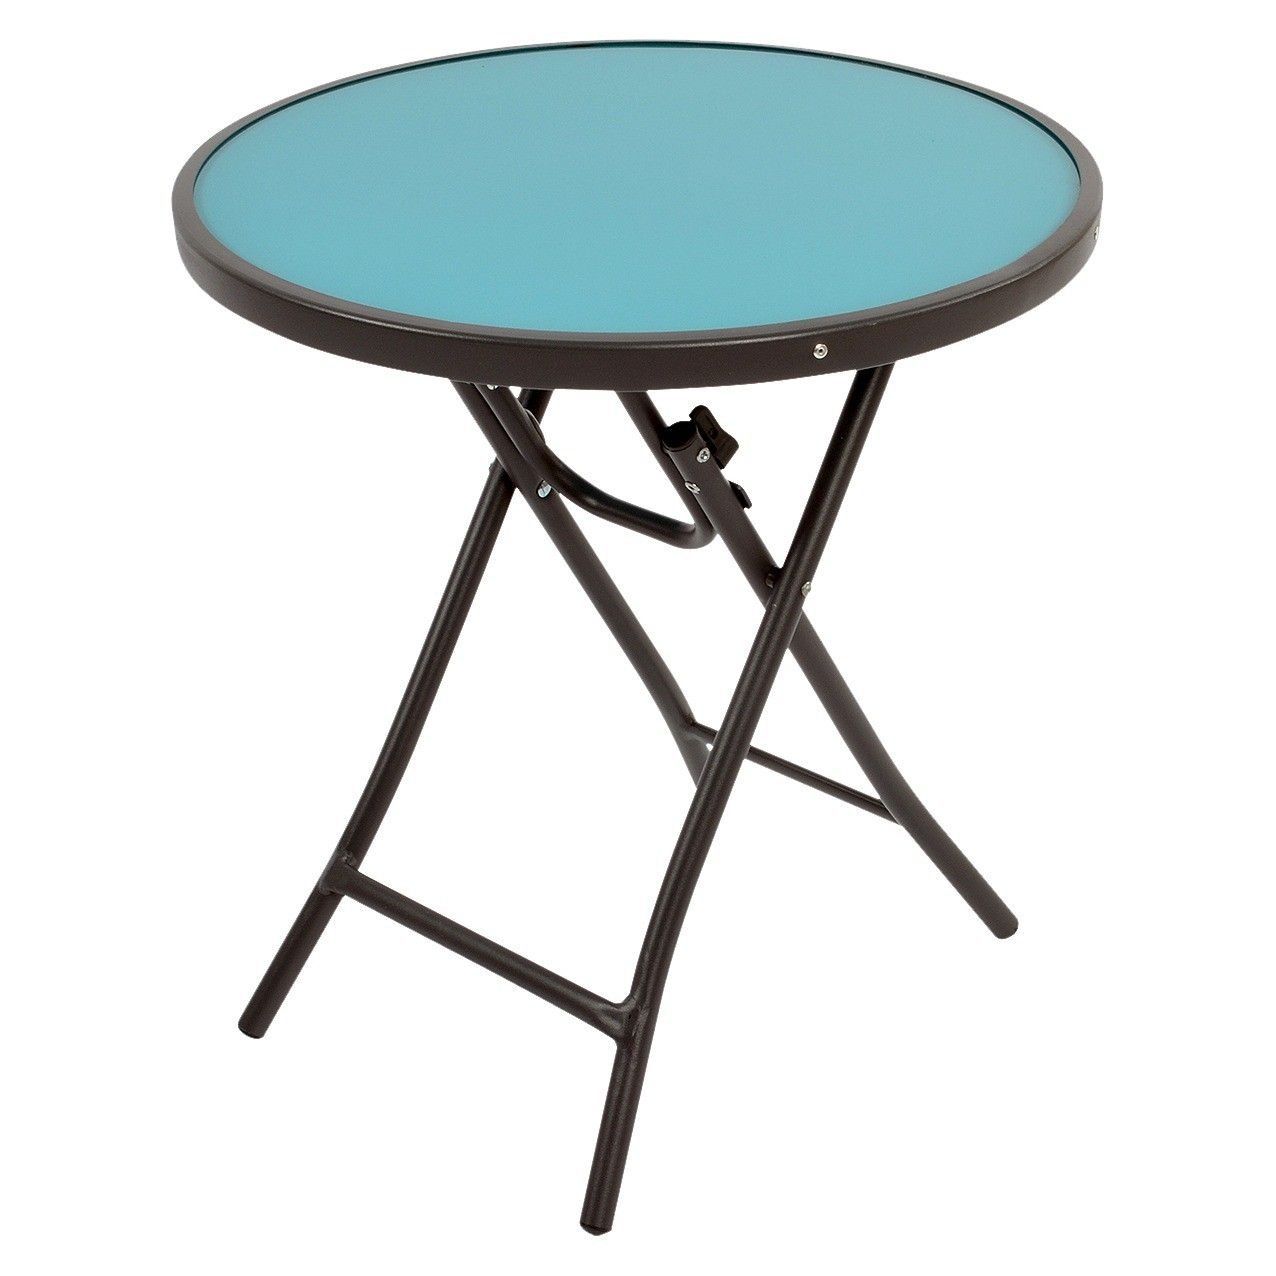 bistro accent table turq target patio patios room essentials turquoise lane mid century end sea themed bedroom tall glass lamps west elm arc floor lamp small white garden pier one